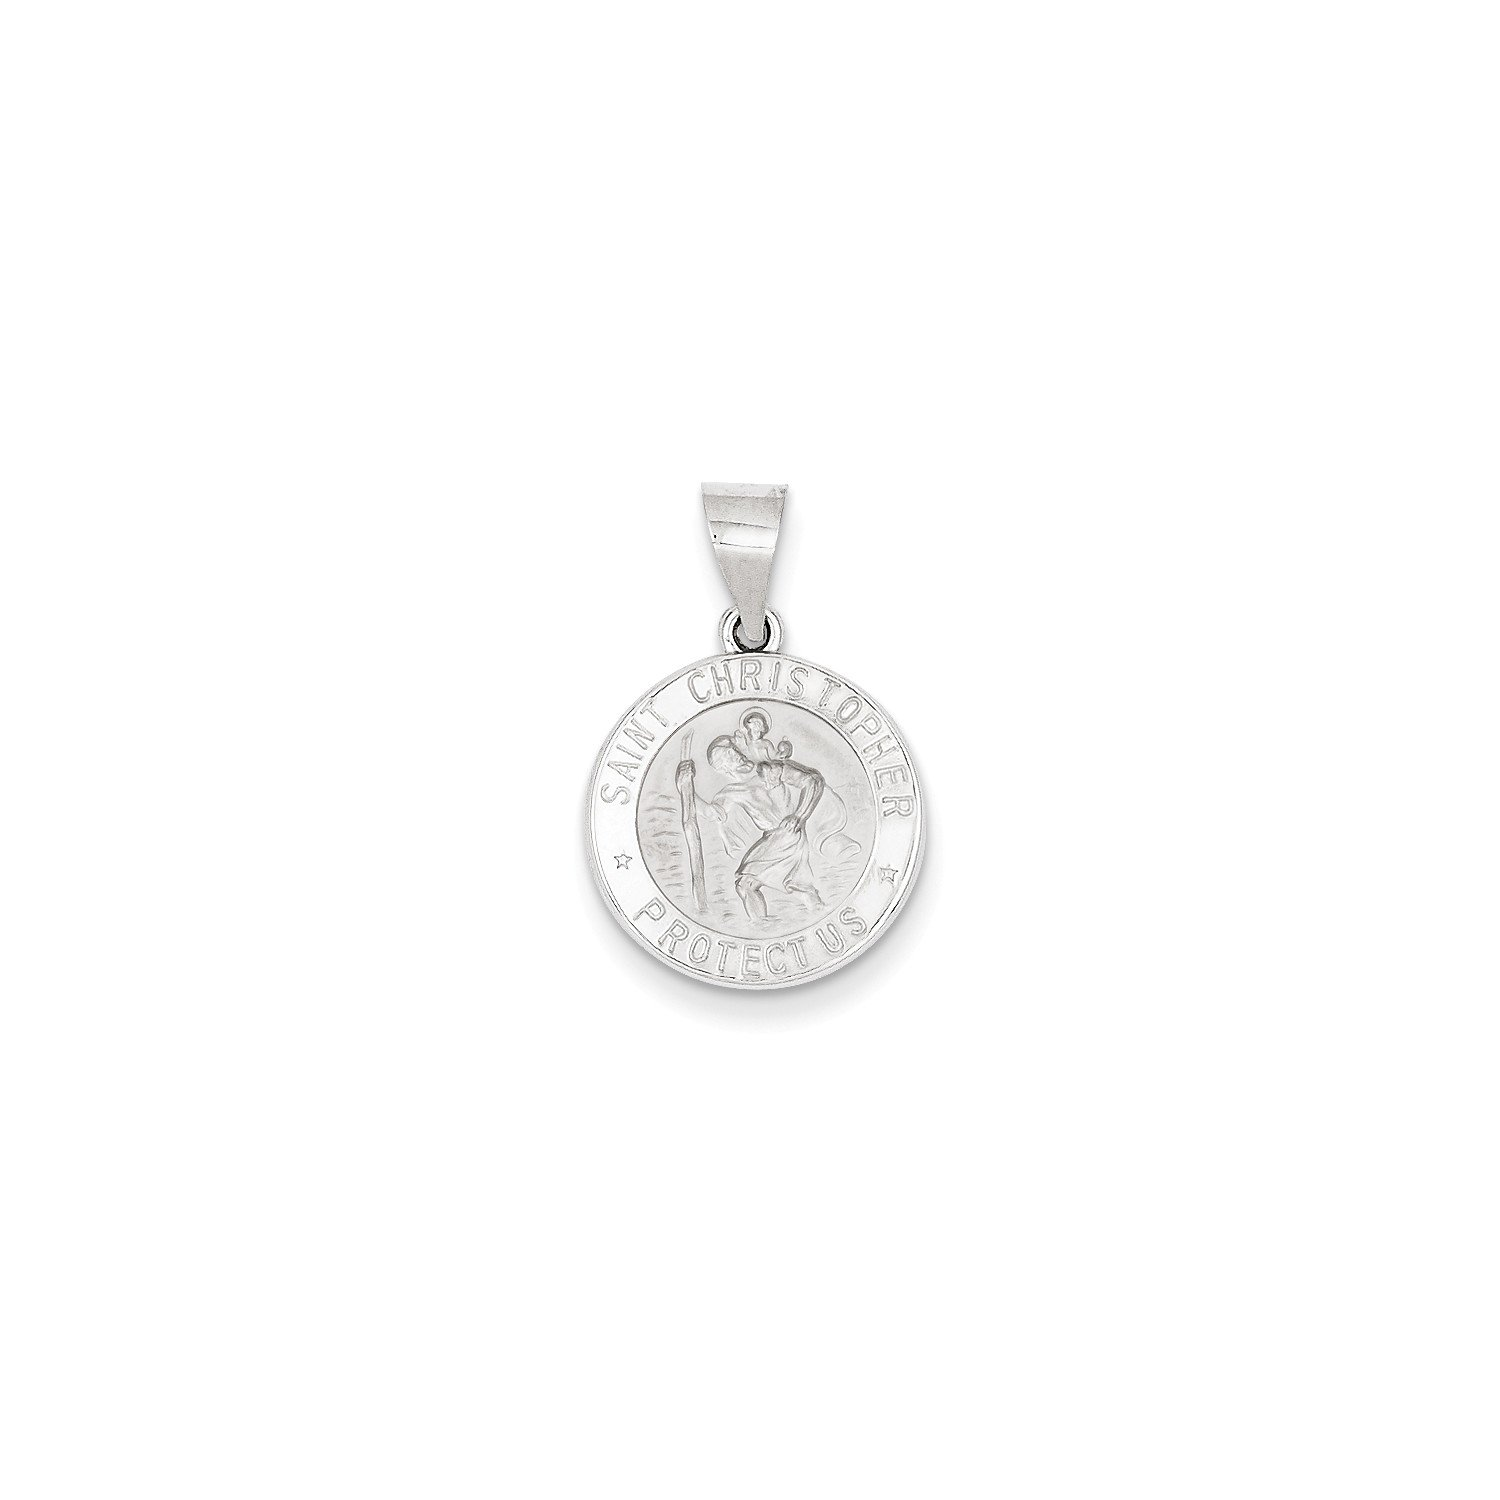 Roy Rose Jewelry 14K White Gold Polished and Satin St. Christopher Medal Pendant 15mm width